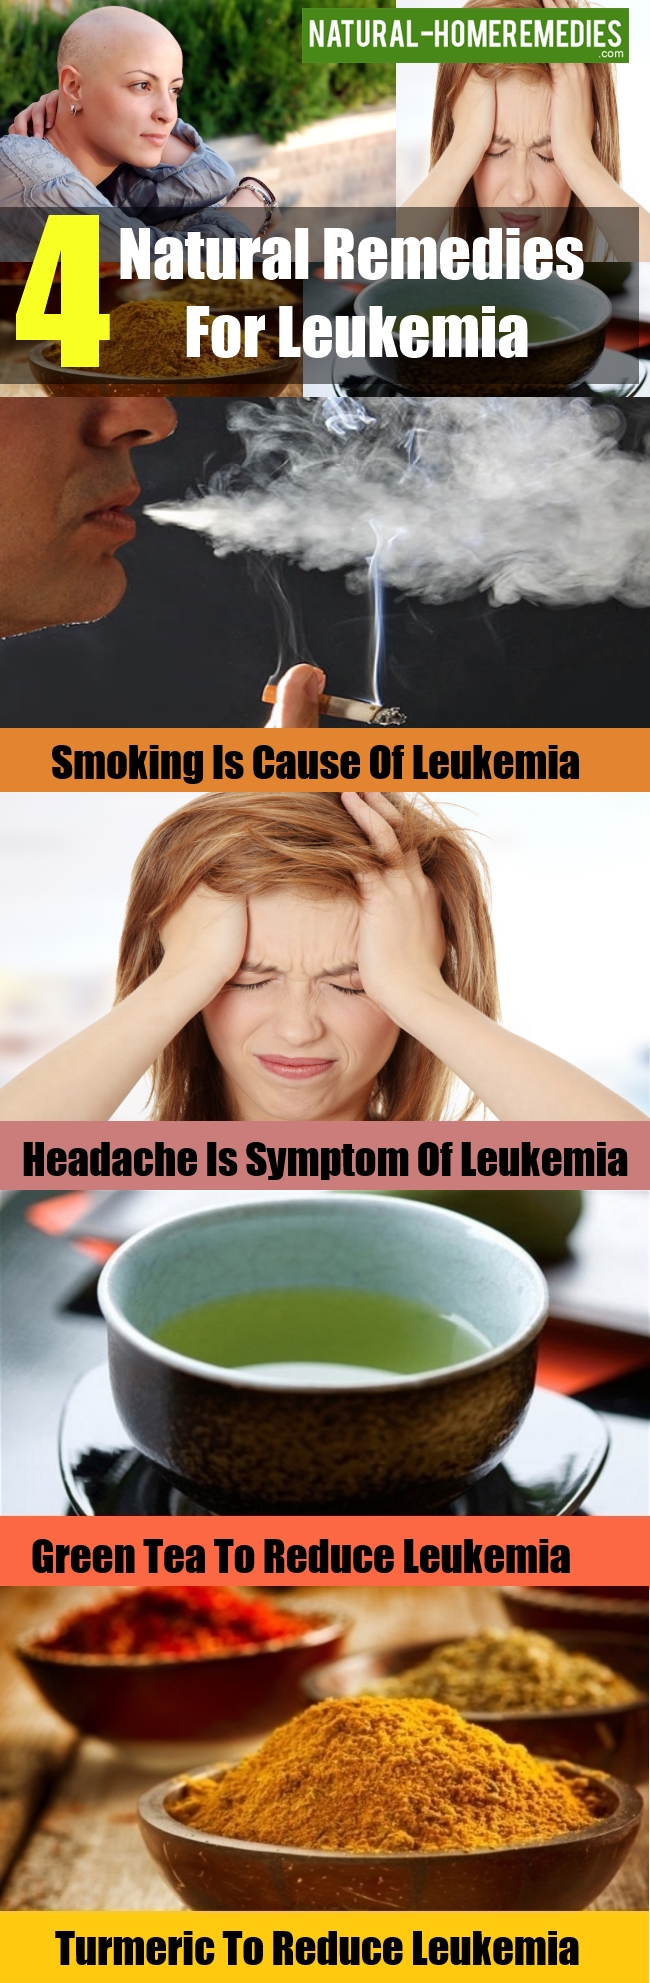 Natural Remedies For Leukemia